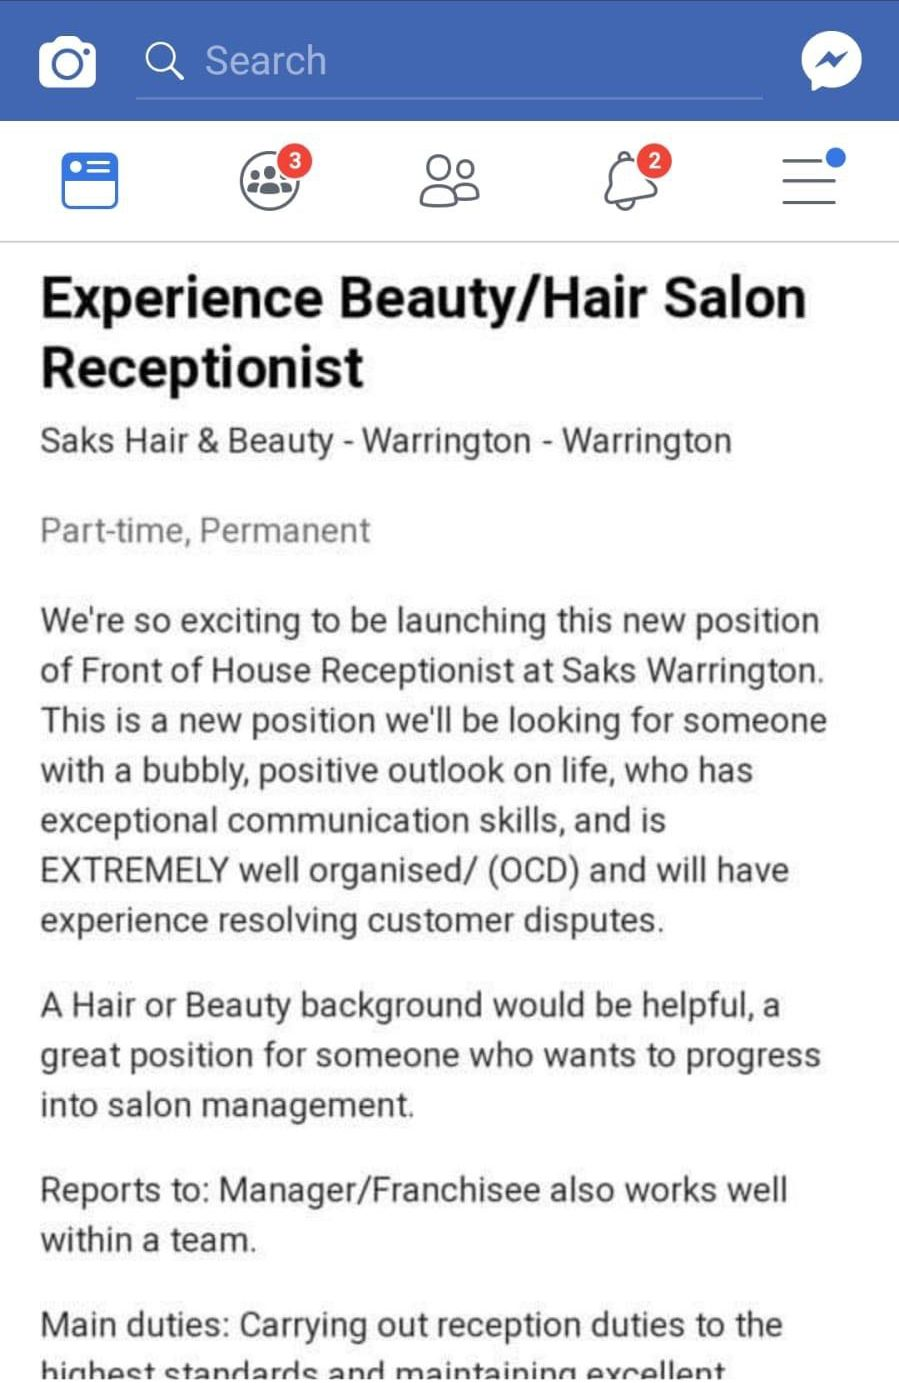 - Image of the job offer from Saks Hair & Beauty TRIANGLE NEWS 0203 176 5581 // contact@trianglenews.co.uk A BEAUTY salon was slammed after it advertised for a receptionist with OCD. The job ad for the experienced beauty and hair salon staff member said the ideal candidate would be ?extremely well organised (OCD).? OCD stands for Obsessive Compulsive Disorder, a recognised mental health condition that can make sufferers? lives hell. *TRIANGLE NEWS DOES NOT CLAIM ANY COPYRIGHT OR LICENSE IN THE ATTACHED MATERIAL. ANY DOWNLOADING FEES CHARGED BY TRIANGLE NEWS ARE FOR TRIANGLE NEWS SERVICES ONLY, AND DO NOT, NOR ARE THEY INTENDED TO, CONVEY TO THE USER ANY COPYRIGHT OR LICENSE IN THE MATERIAL. BY PUBLISHING THIS MATERIAL , THE USER EXPRESSLY AGREES TO INDEMNIFY AND TO HOLD TRIANGLE NEWS HARMLESS FROM ANY CLAIMS, DEMANDS, OR CAUSES OF ACTION ARISING OUT OF OR CONNECTED IN ANY WAY WITH USER'S PUBLICATION OF THE MATERIAL*